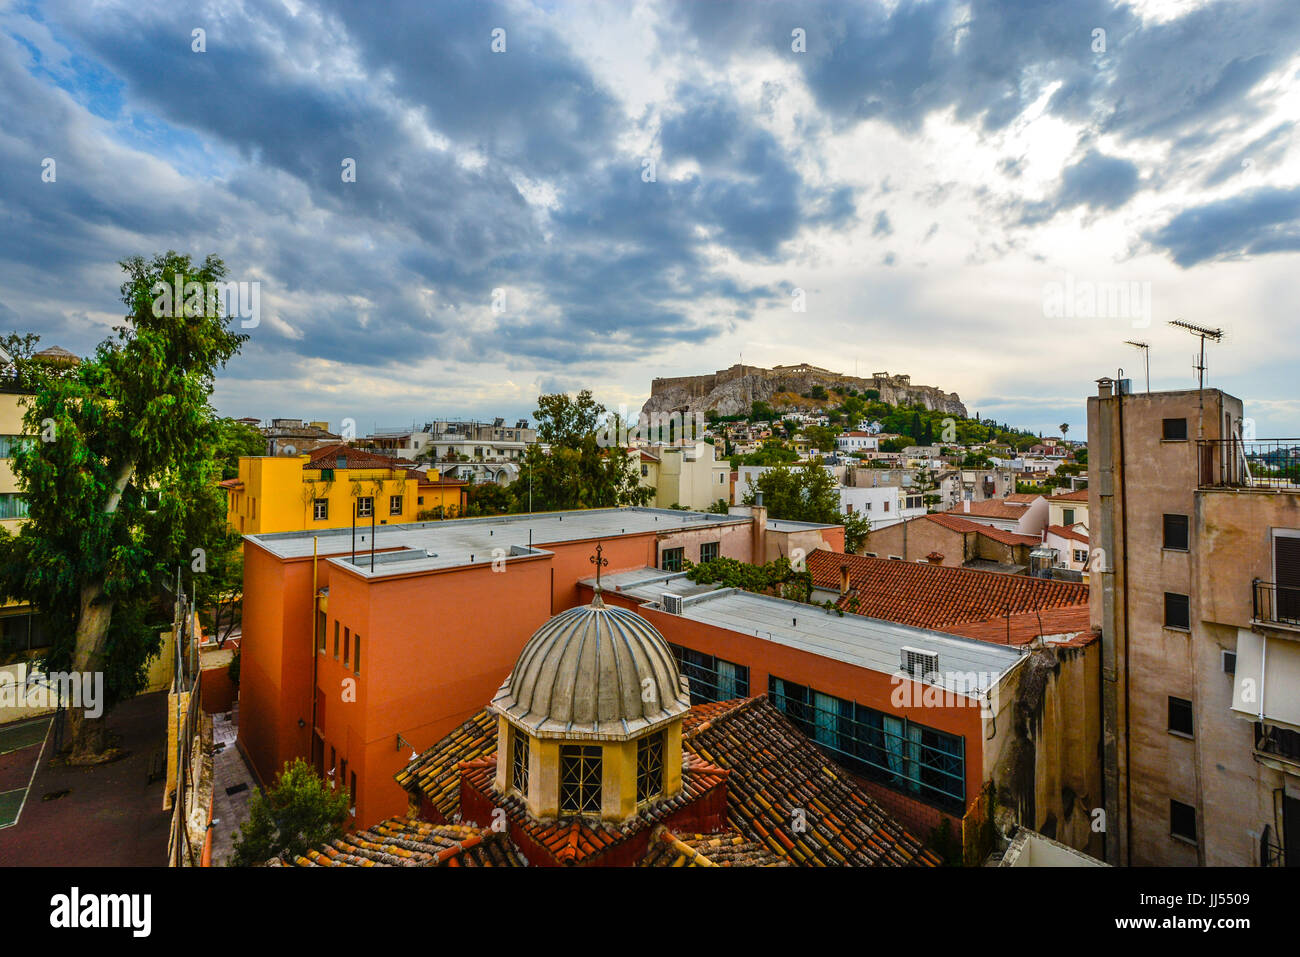 Athens Greece view of the Acropolis and Parthenon on a late afternoon in the summer from a window in the Plaka district - Stock Image